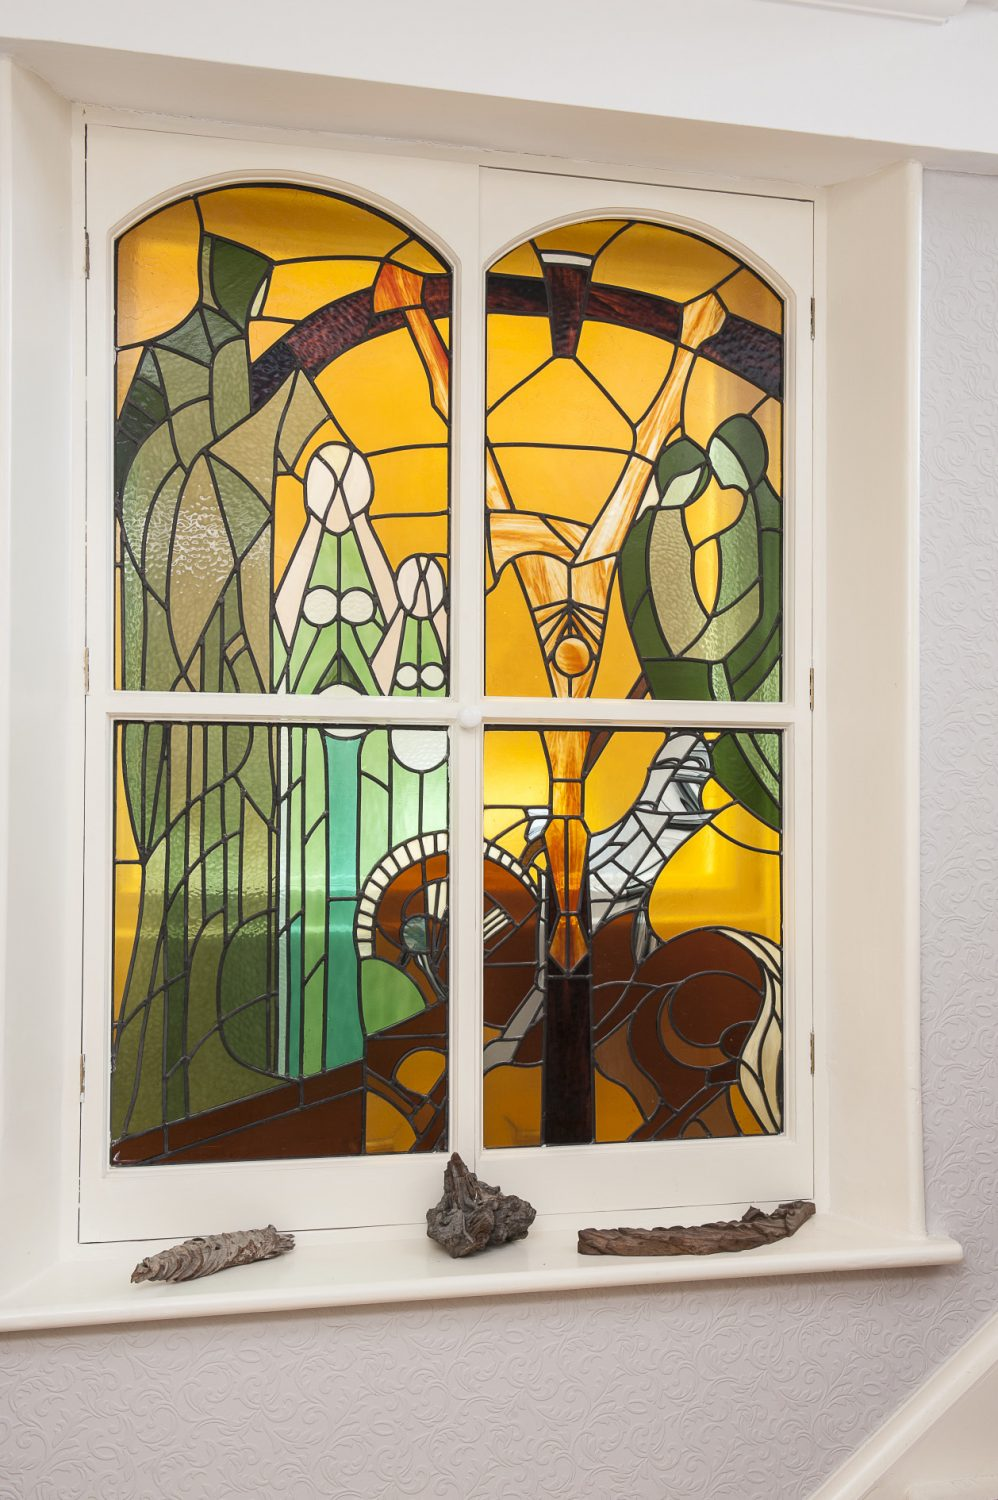 The work of Isobel Ackary is evident in the shape of two lovely stained glass-fronted cabinets and a small basement window